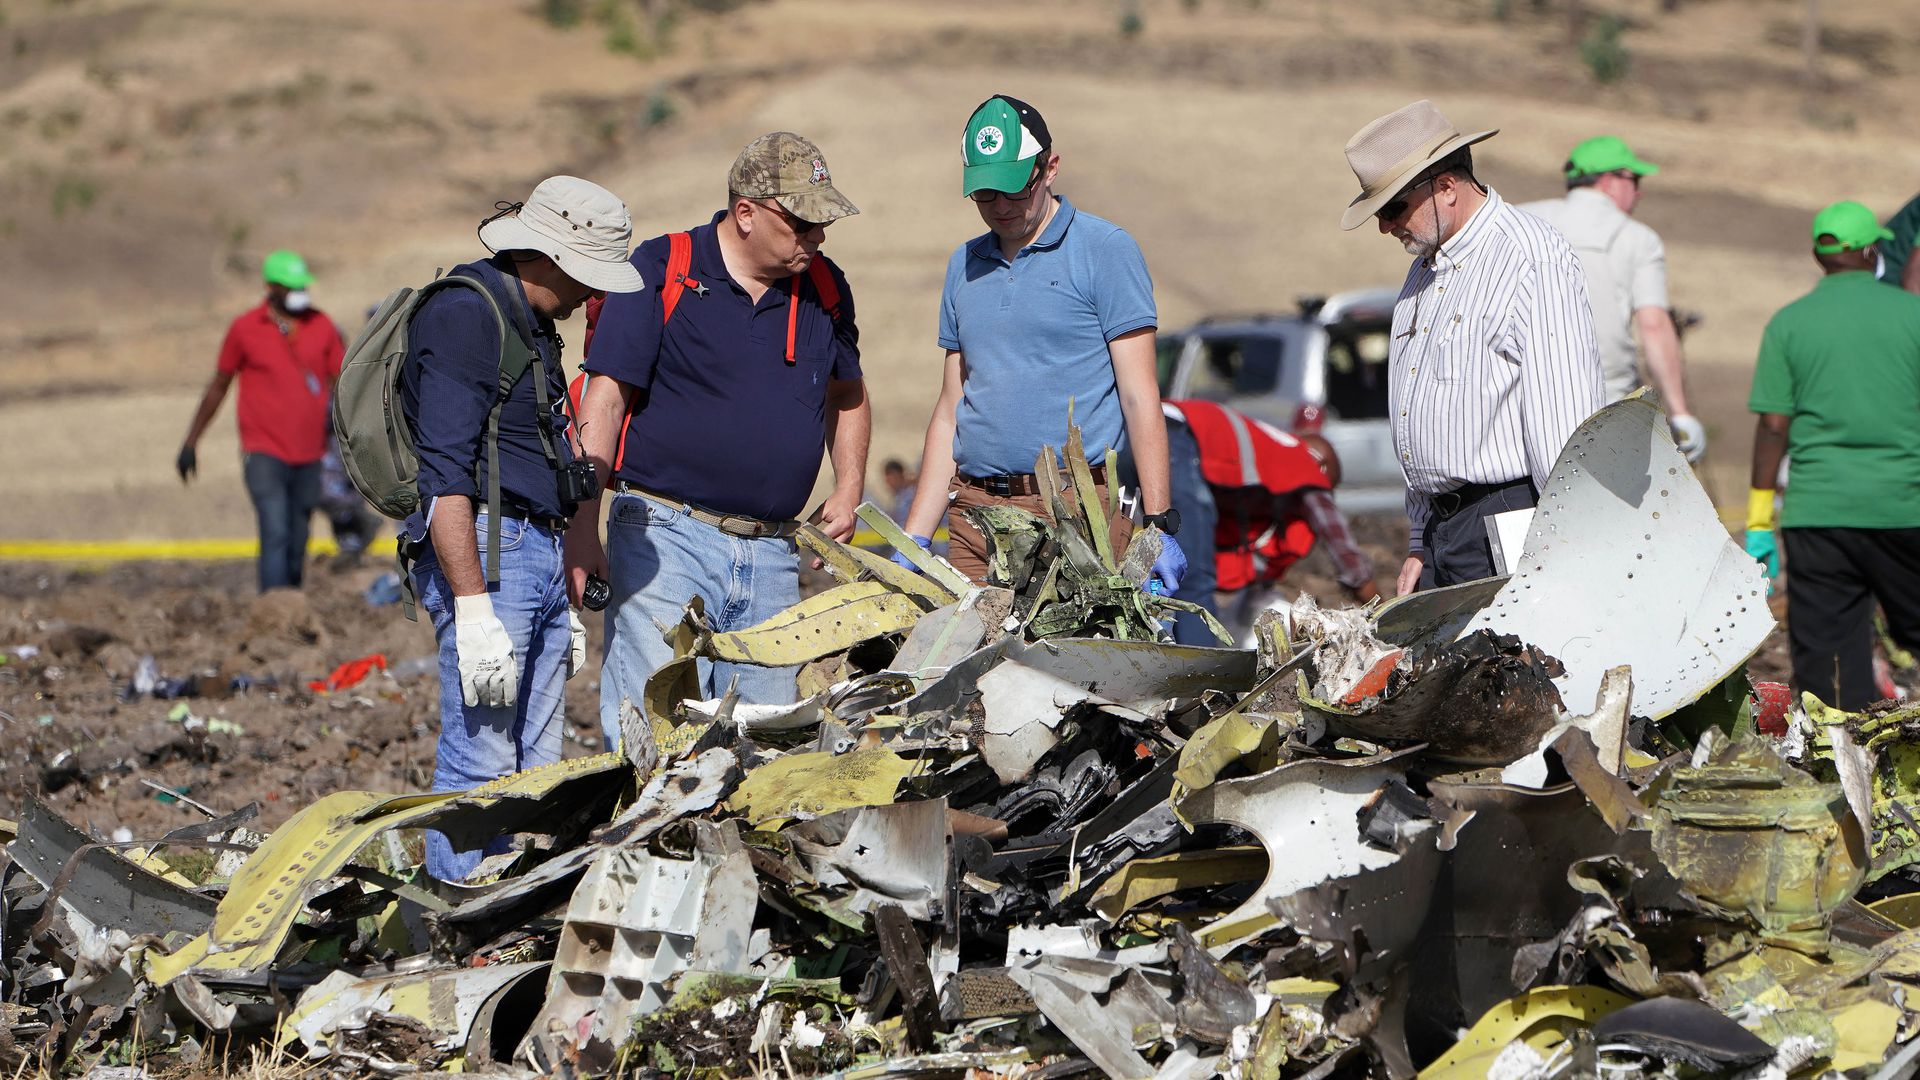 Investigators with the U.S. National Transportation and Safety Board look over debris at the crash site of Ethiopian Airlines Flight ET 302.